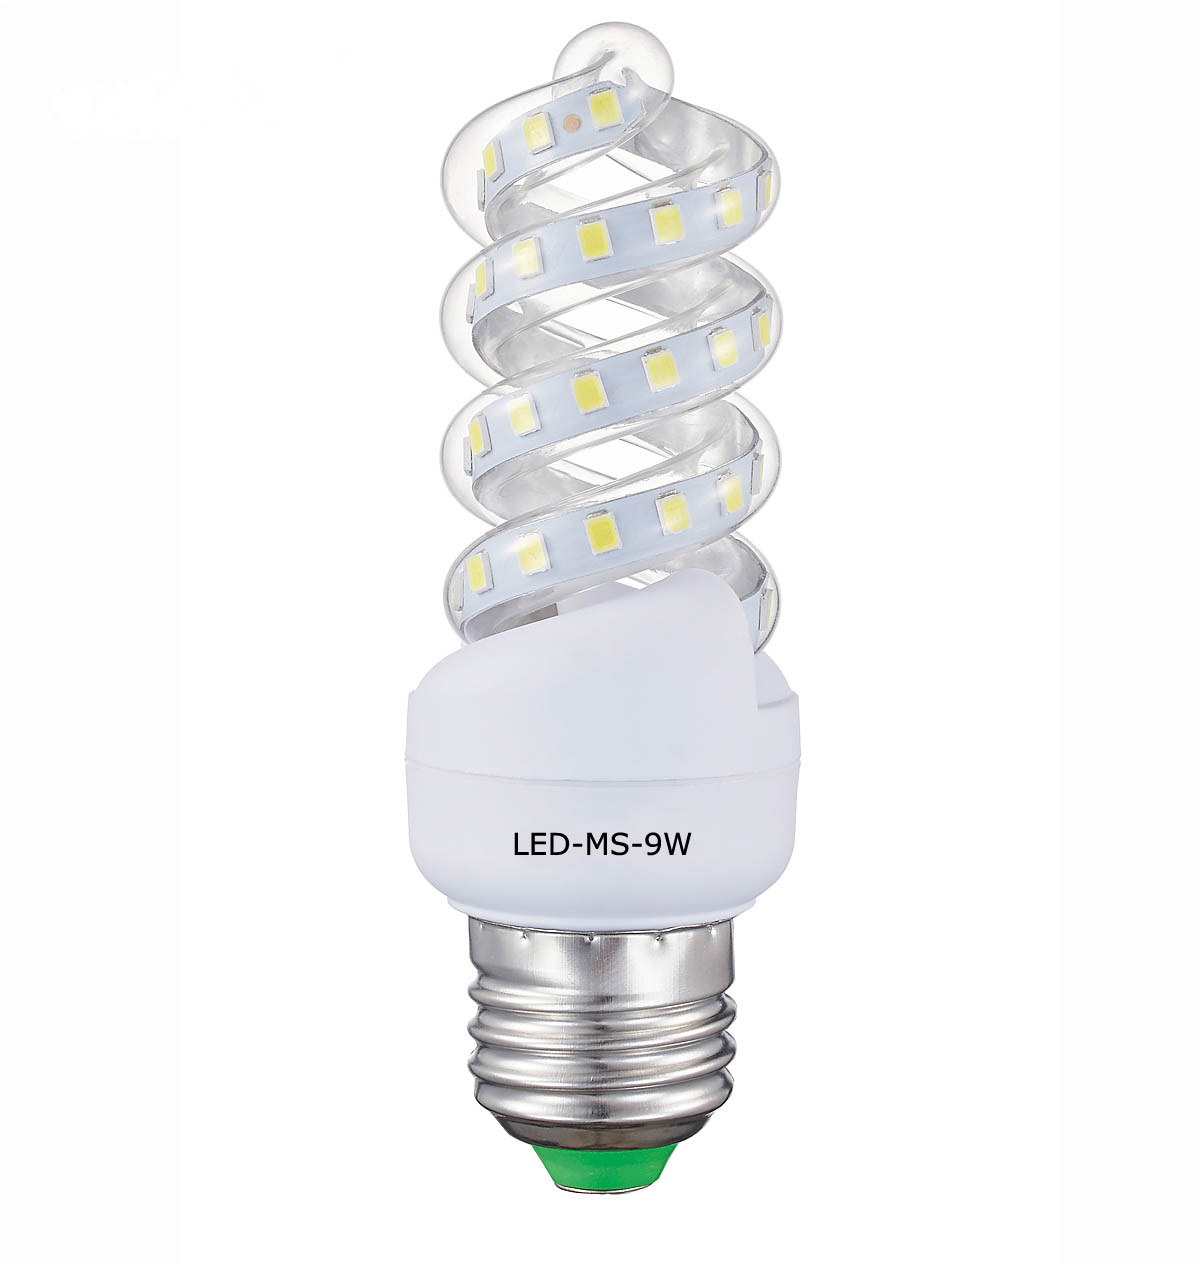 LED mini spiral lamp 9W